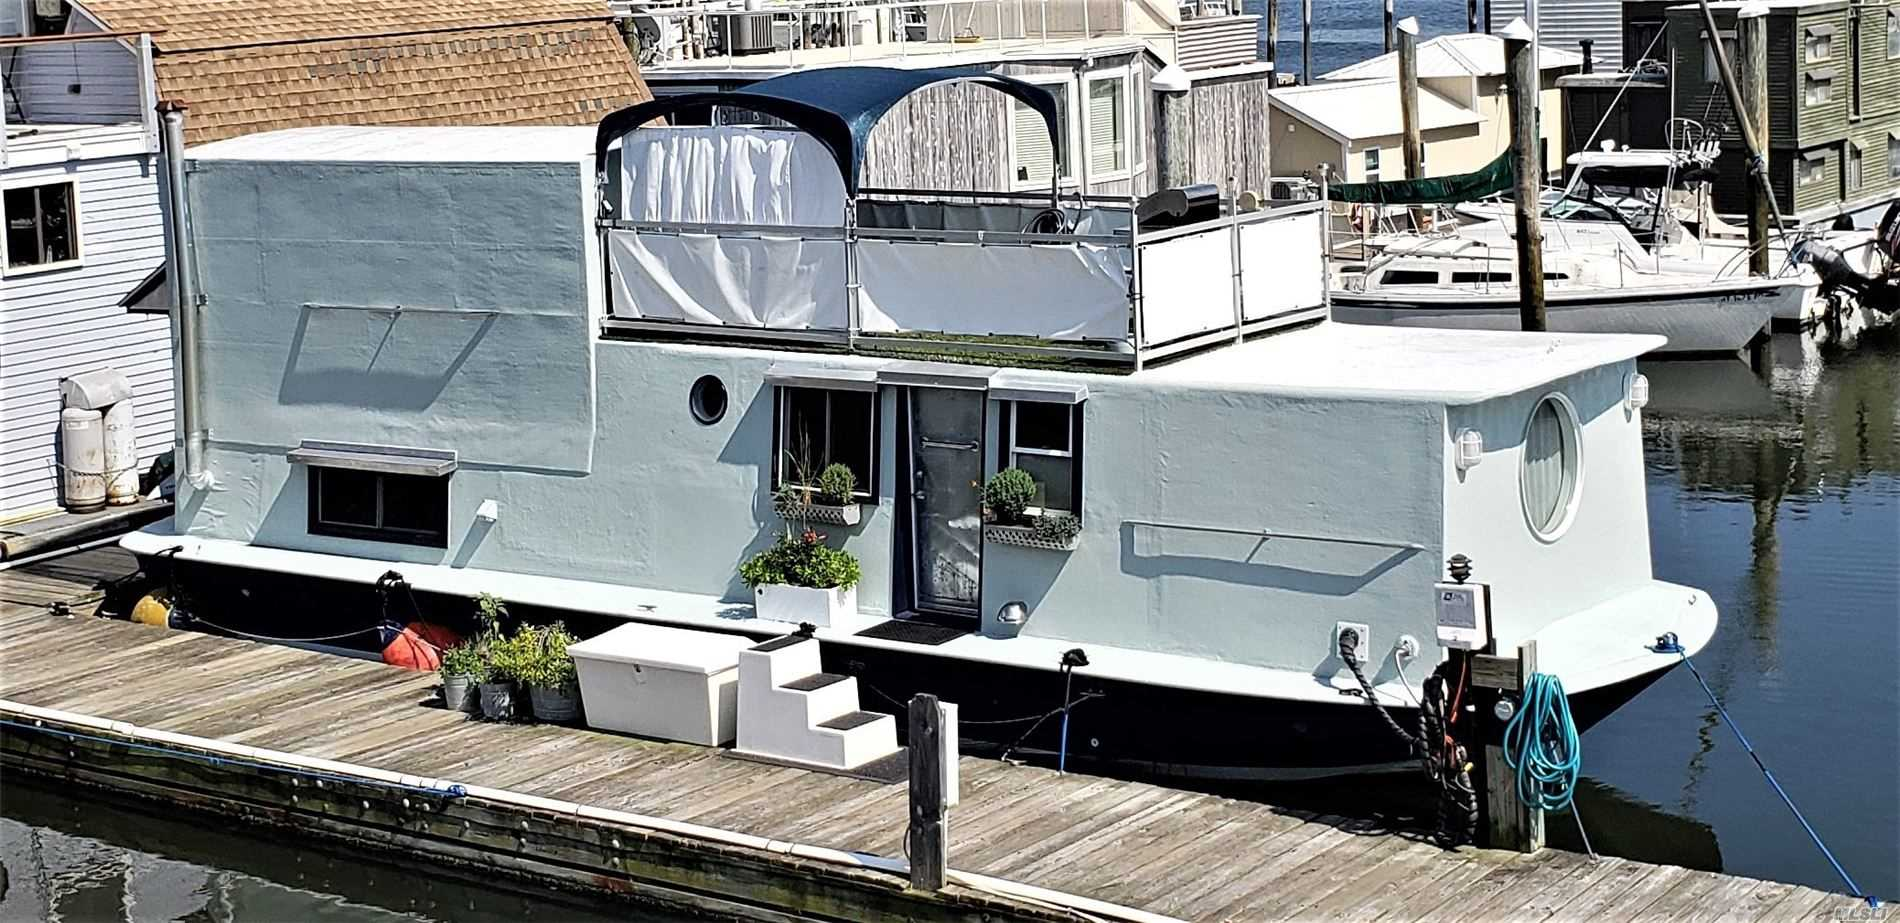 48' X 14' Chris Craft hull Houseboat built on a sturdy V-Hull. House was built with traditional framing, insulation, sheeting and wrapped in fiberglass. It features (approx. 600 sqft) one bedroom, living room, lovely kitchen, full bath and office area. It has washer/dryer, portable A/C unit, plenty of storage space and was recently painted. An amazing upper deck makes it absolutely a fun place to live on the waterfront!! Sold 'as is'. Slip fee $700/month. Cash transaction only.